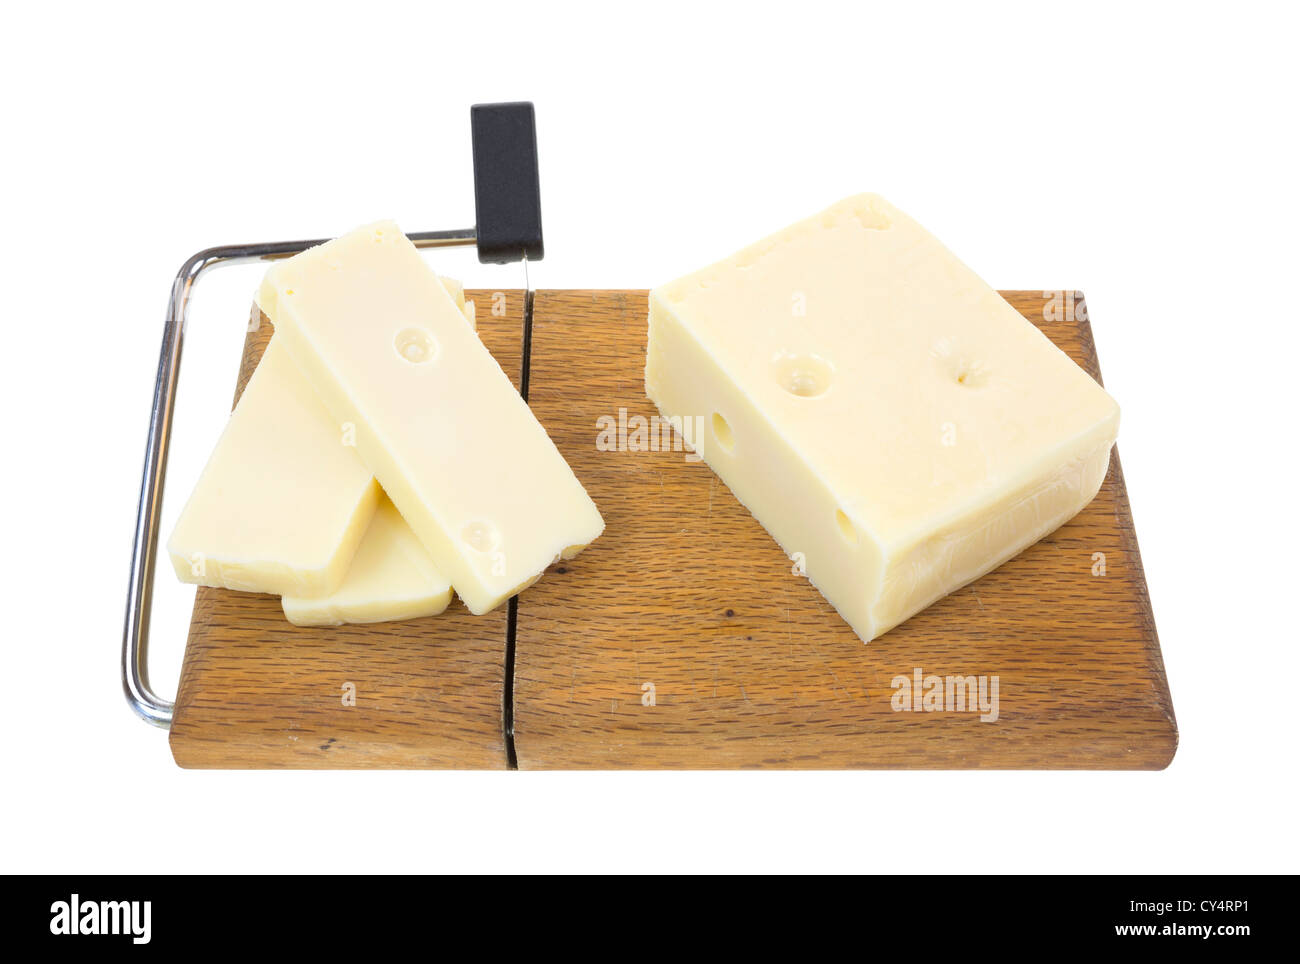 Cutting Cheese With Wire Stock Photos & Cutting Cheese With Wire ...